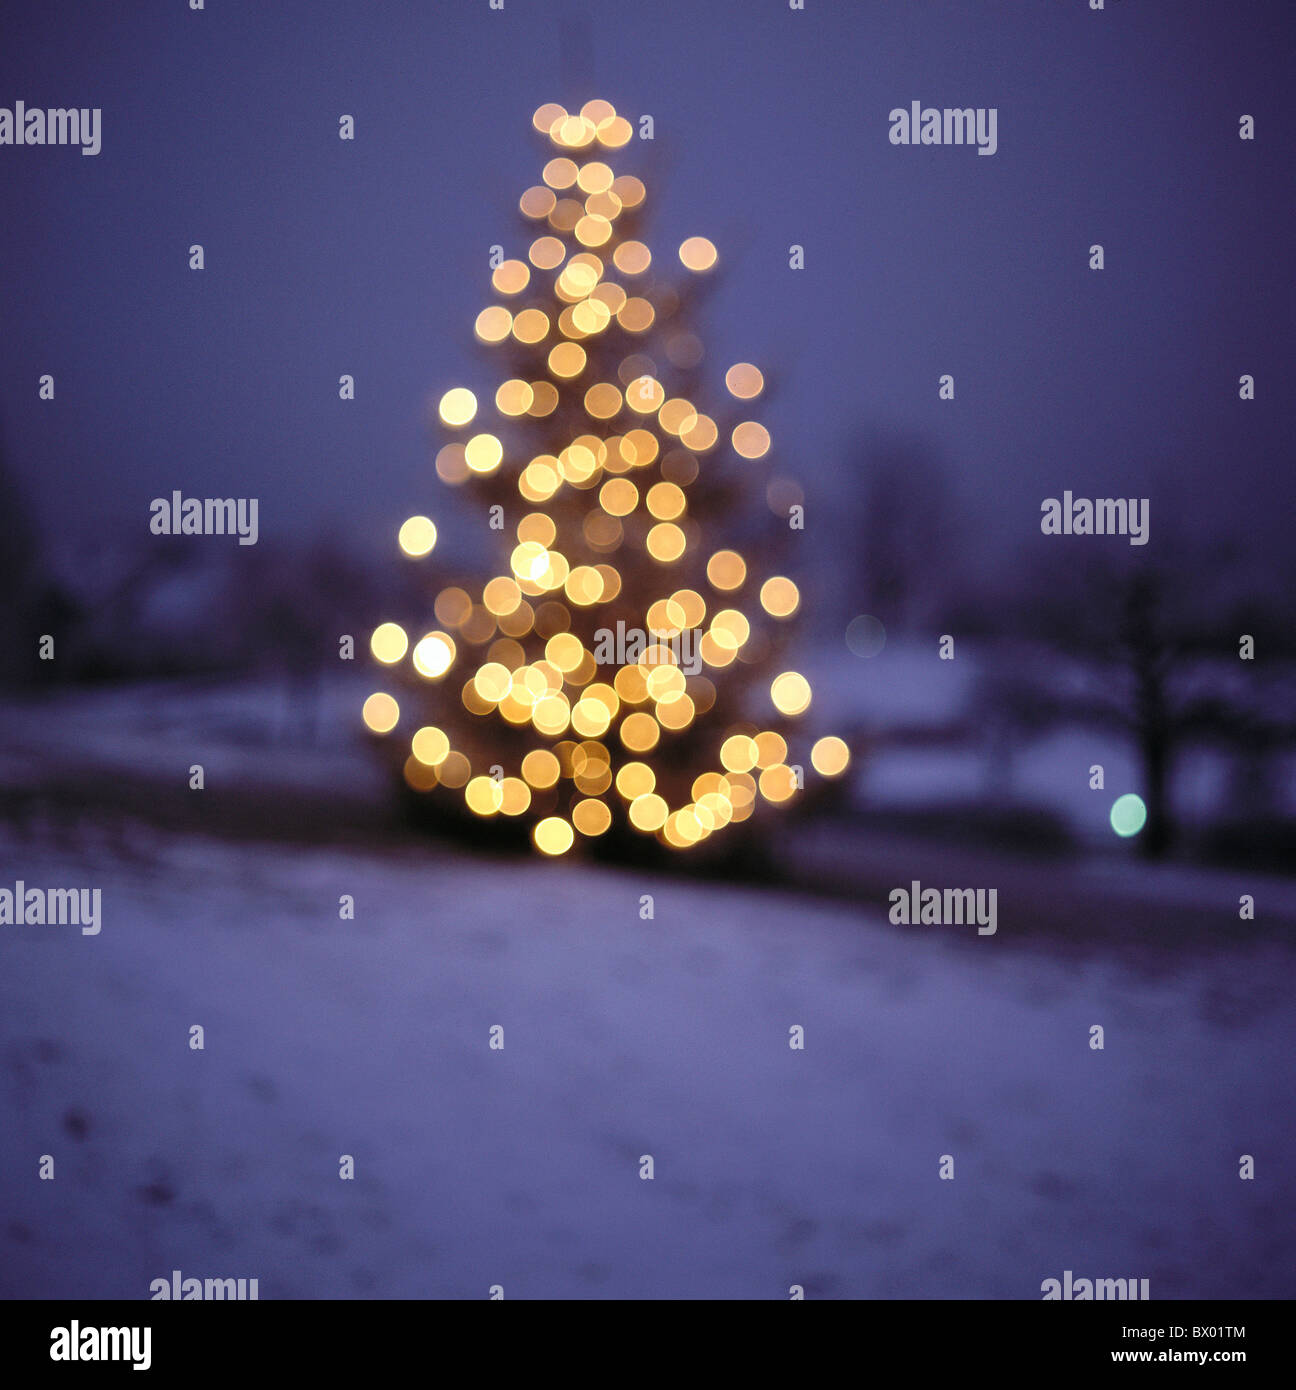 Christmas tree impression points of light at night blurr Christmas - Stock Image